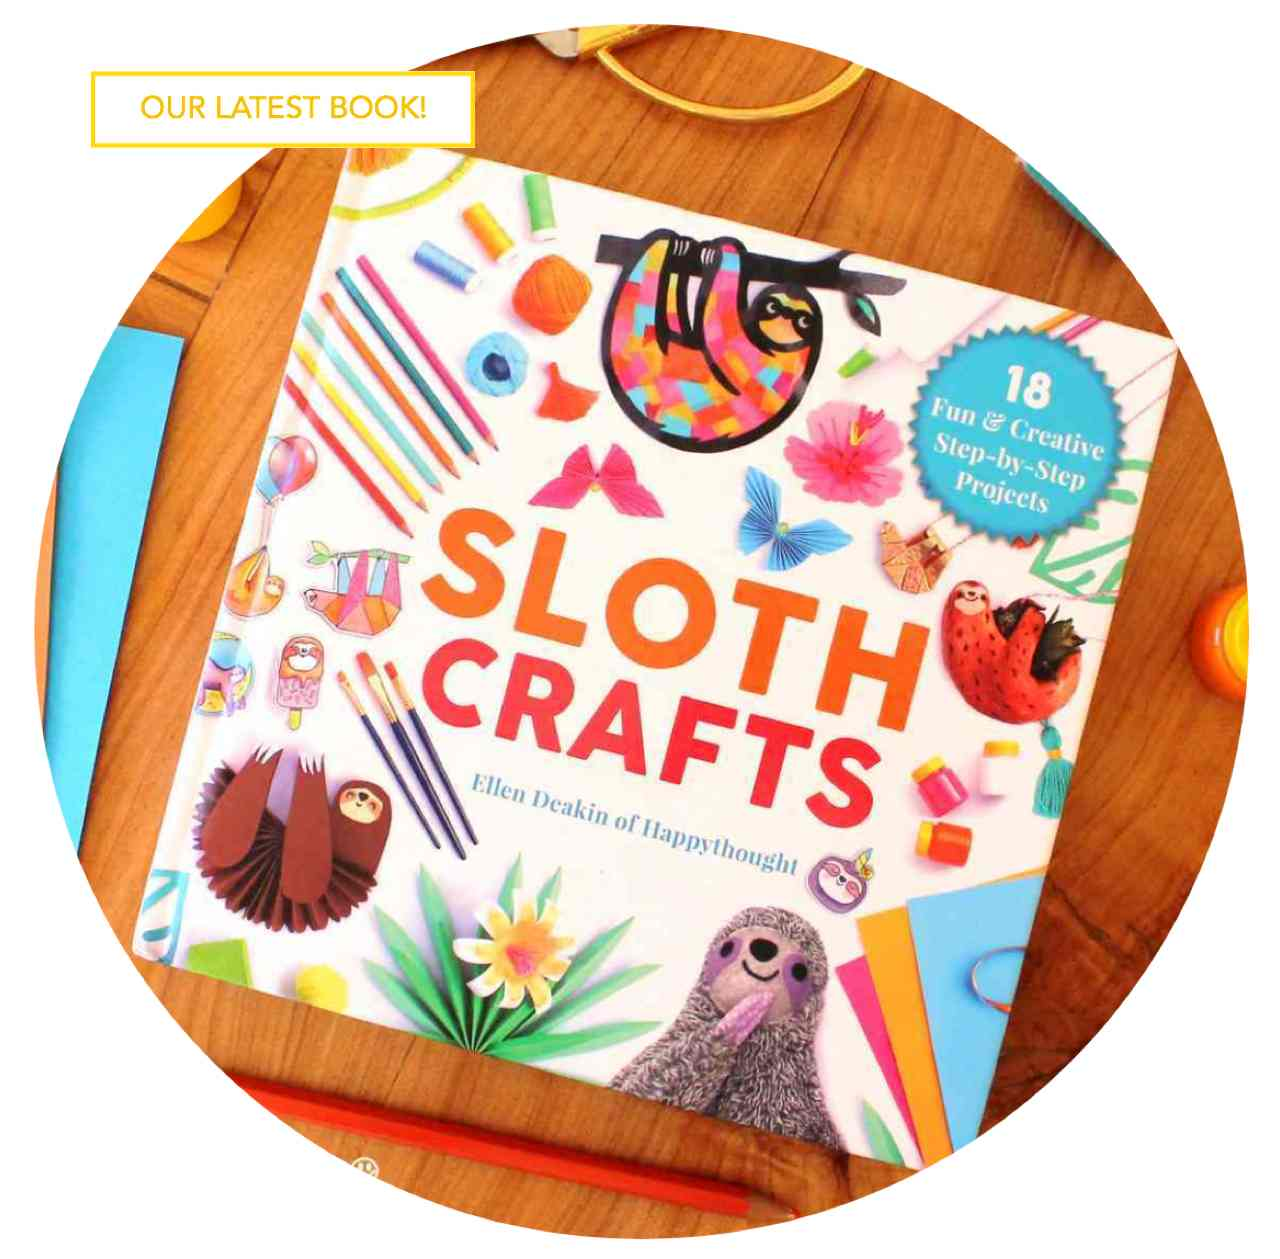 Sloth craft book by Happythought